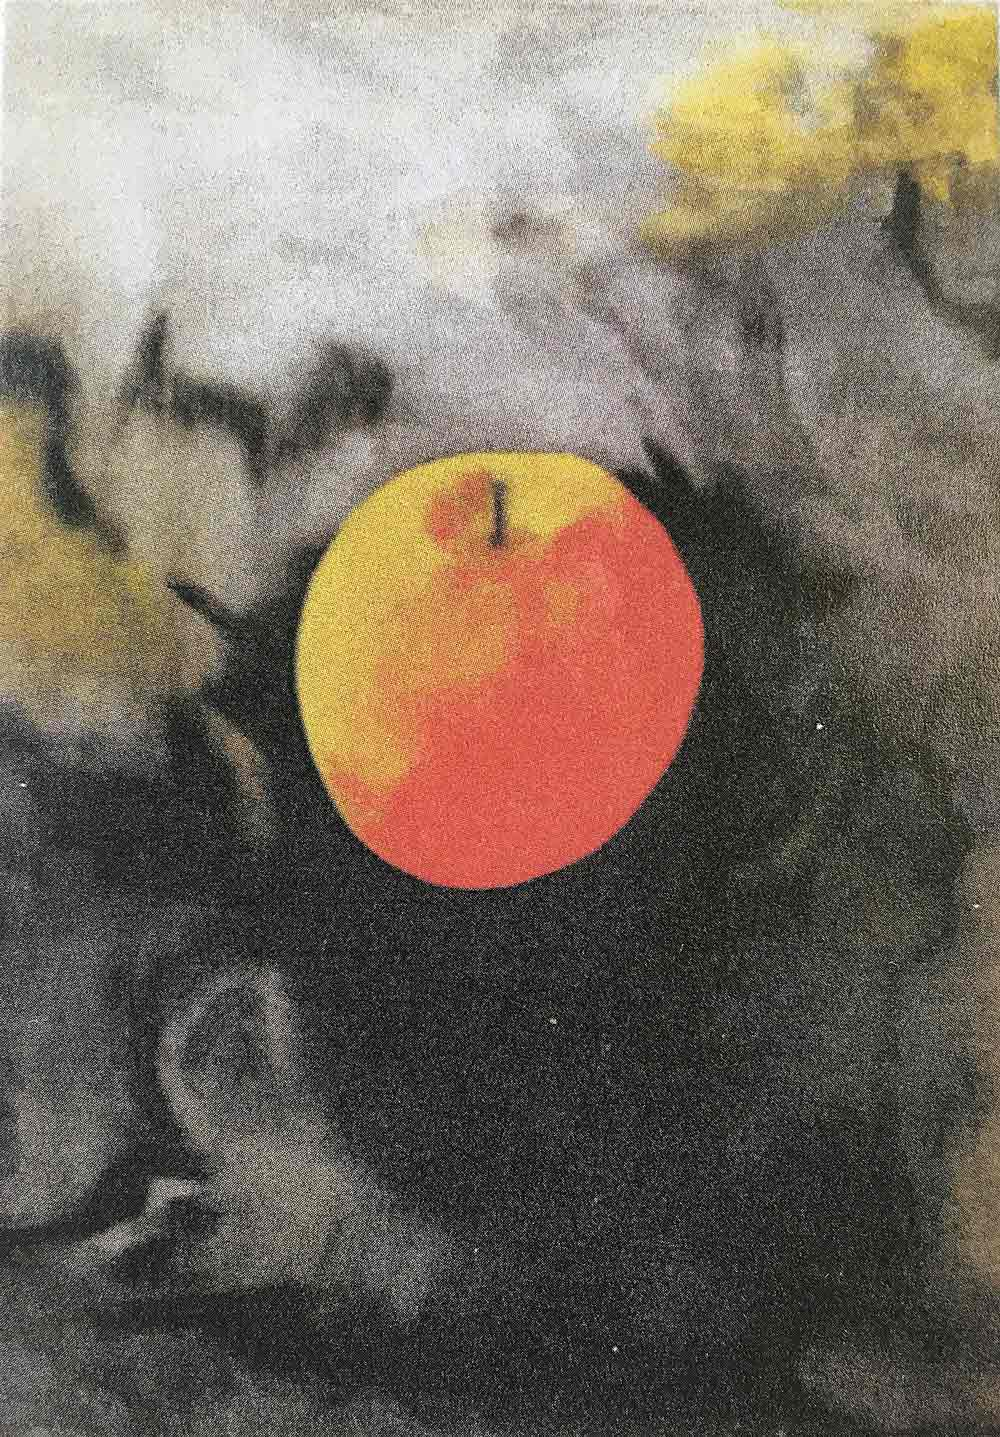 Isaac Newton's apple JOHN SPICER (self taught)